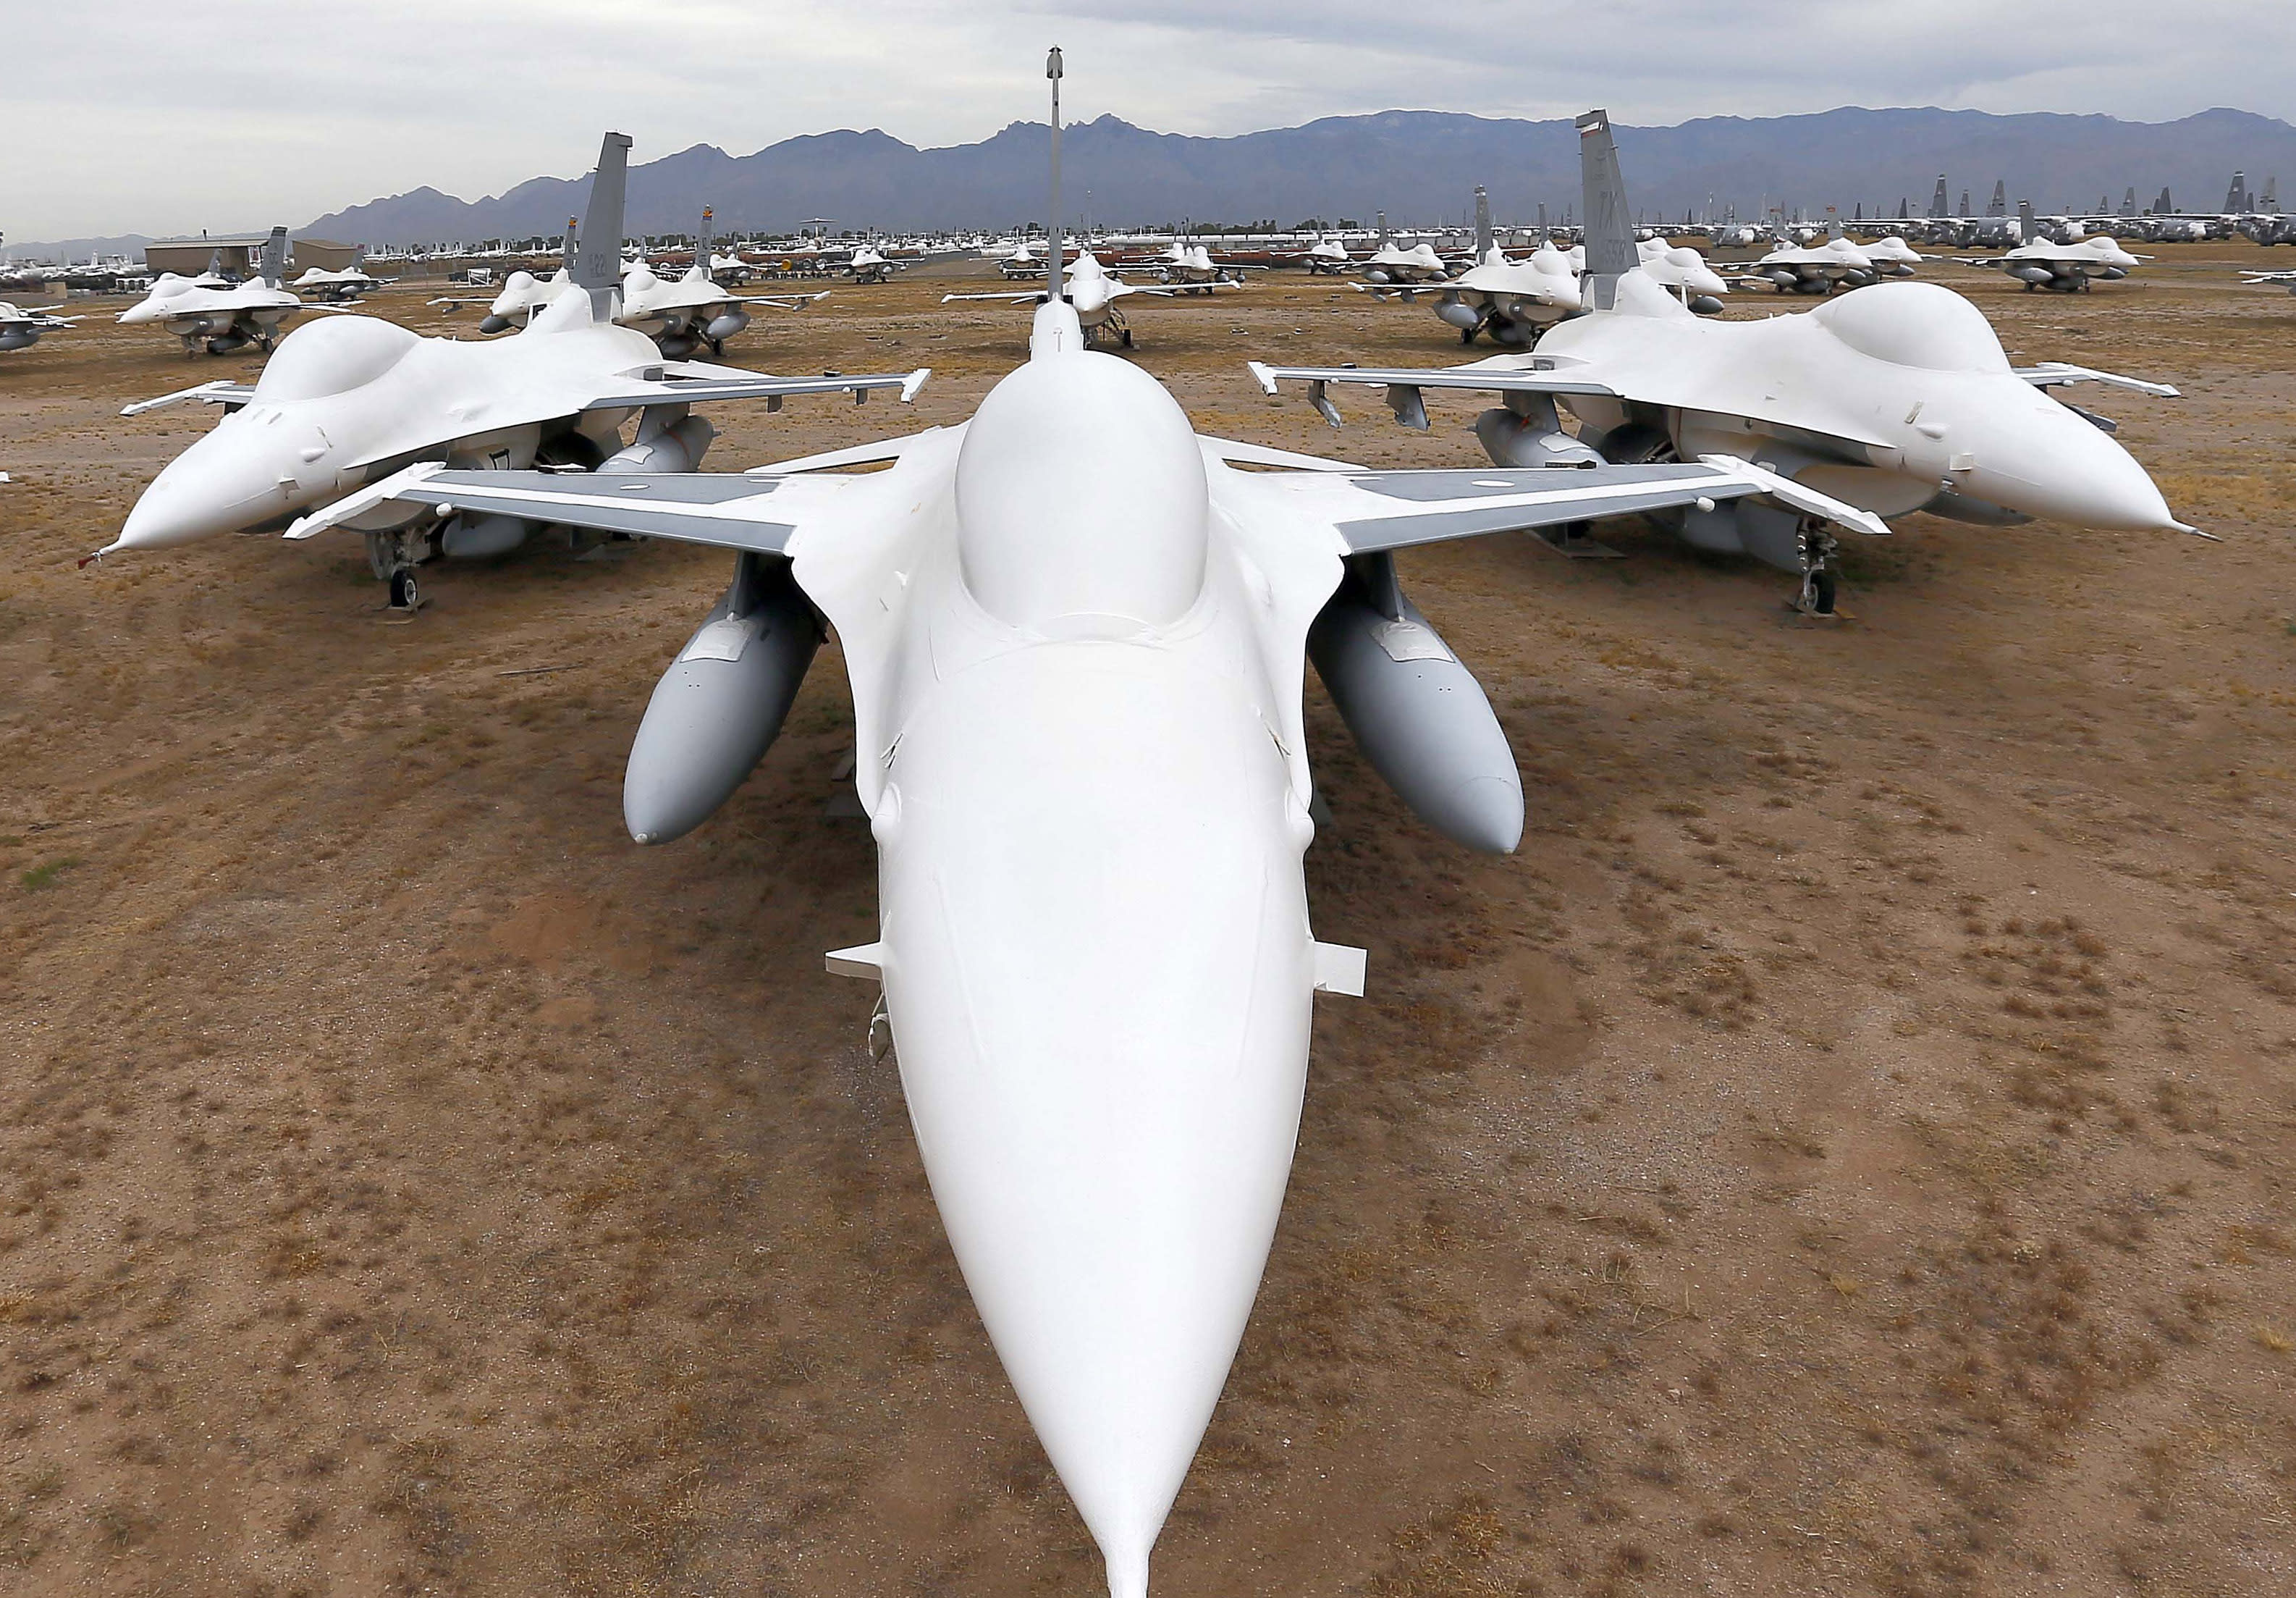 PHOTO ESSAY: Arizona site holds 'bones' of 4,000 planes